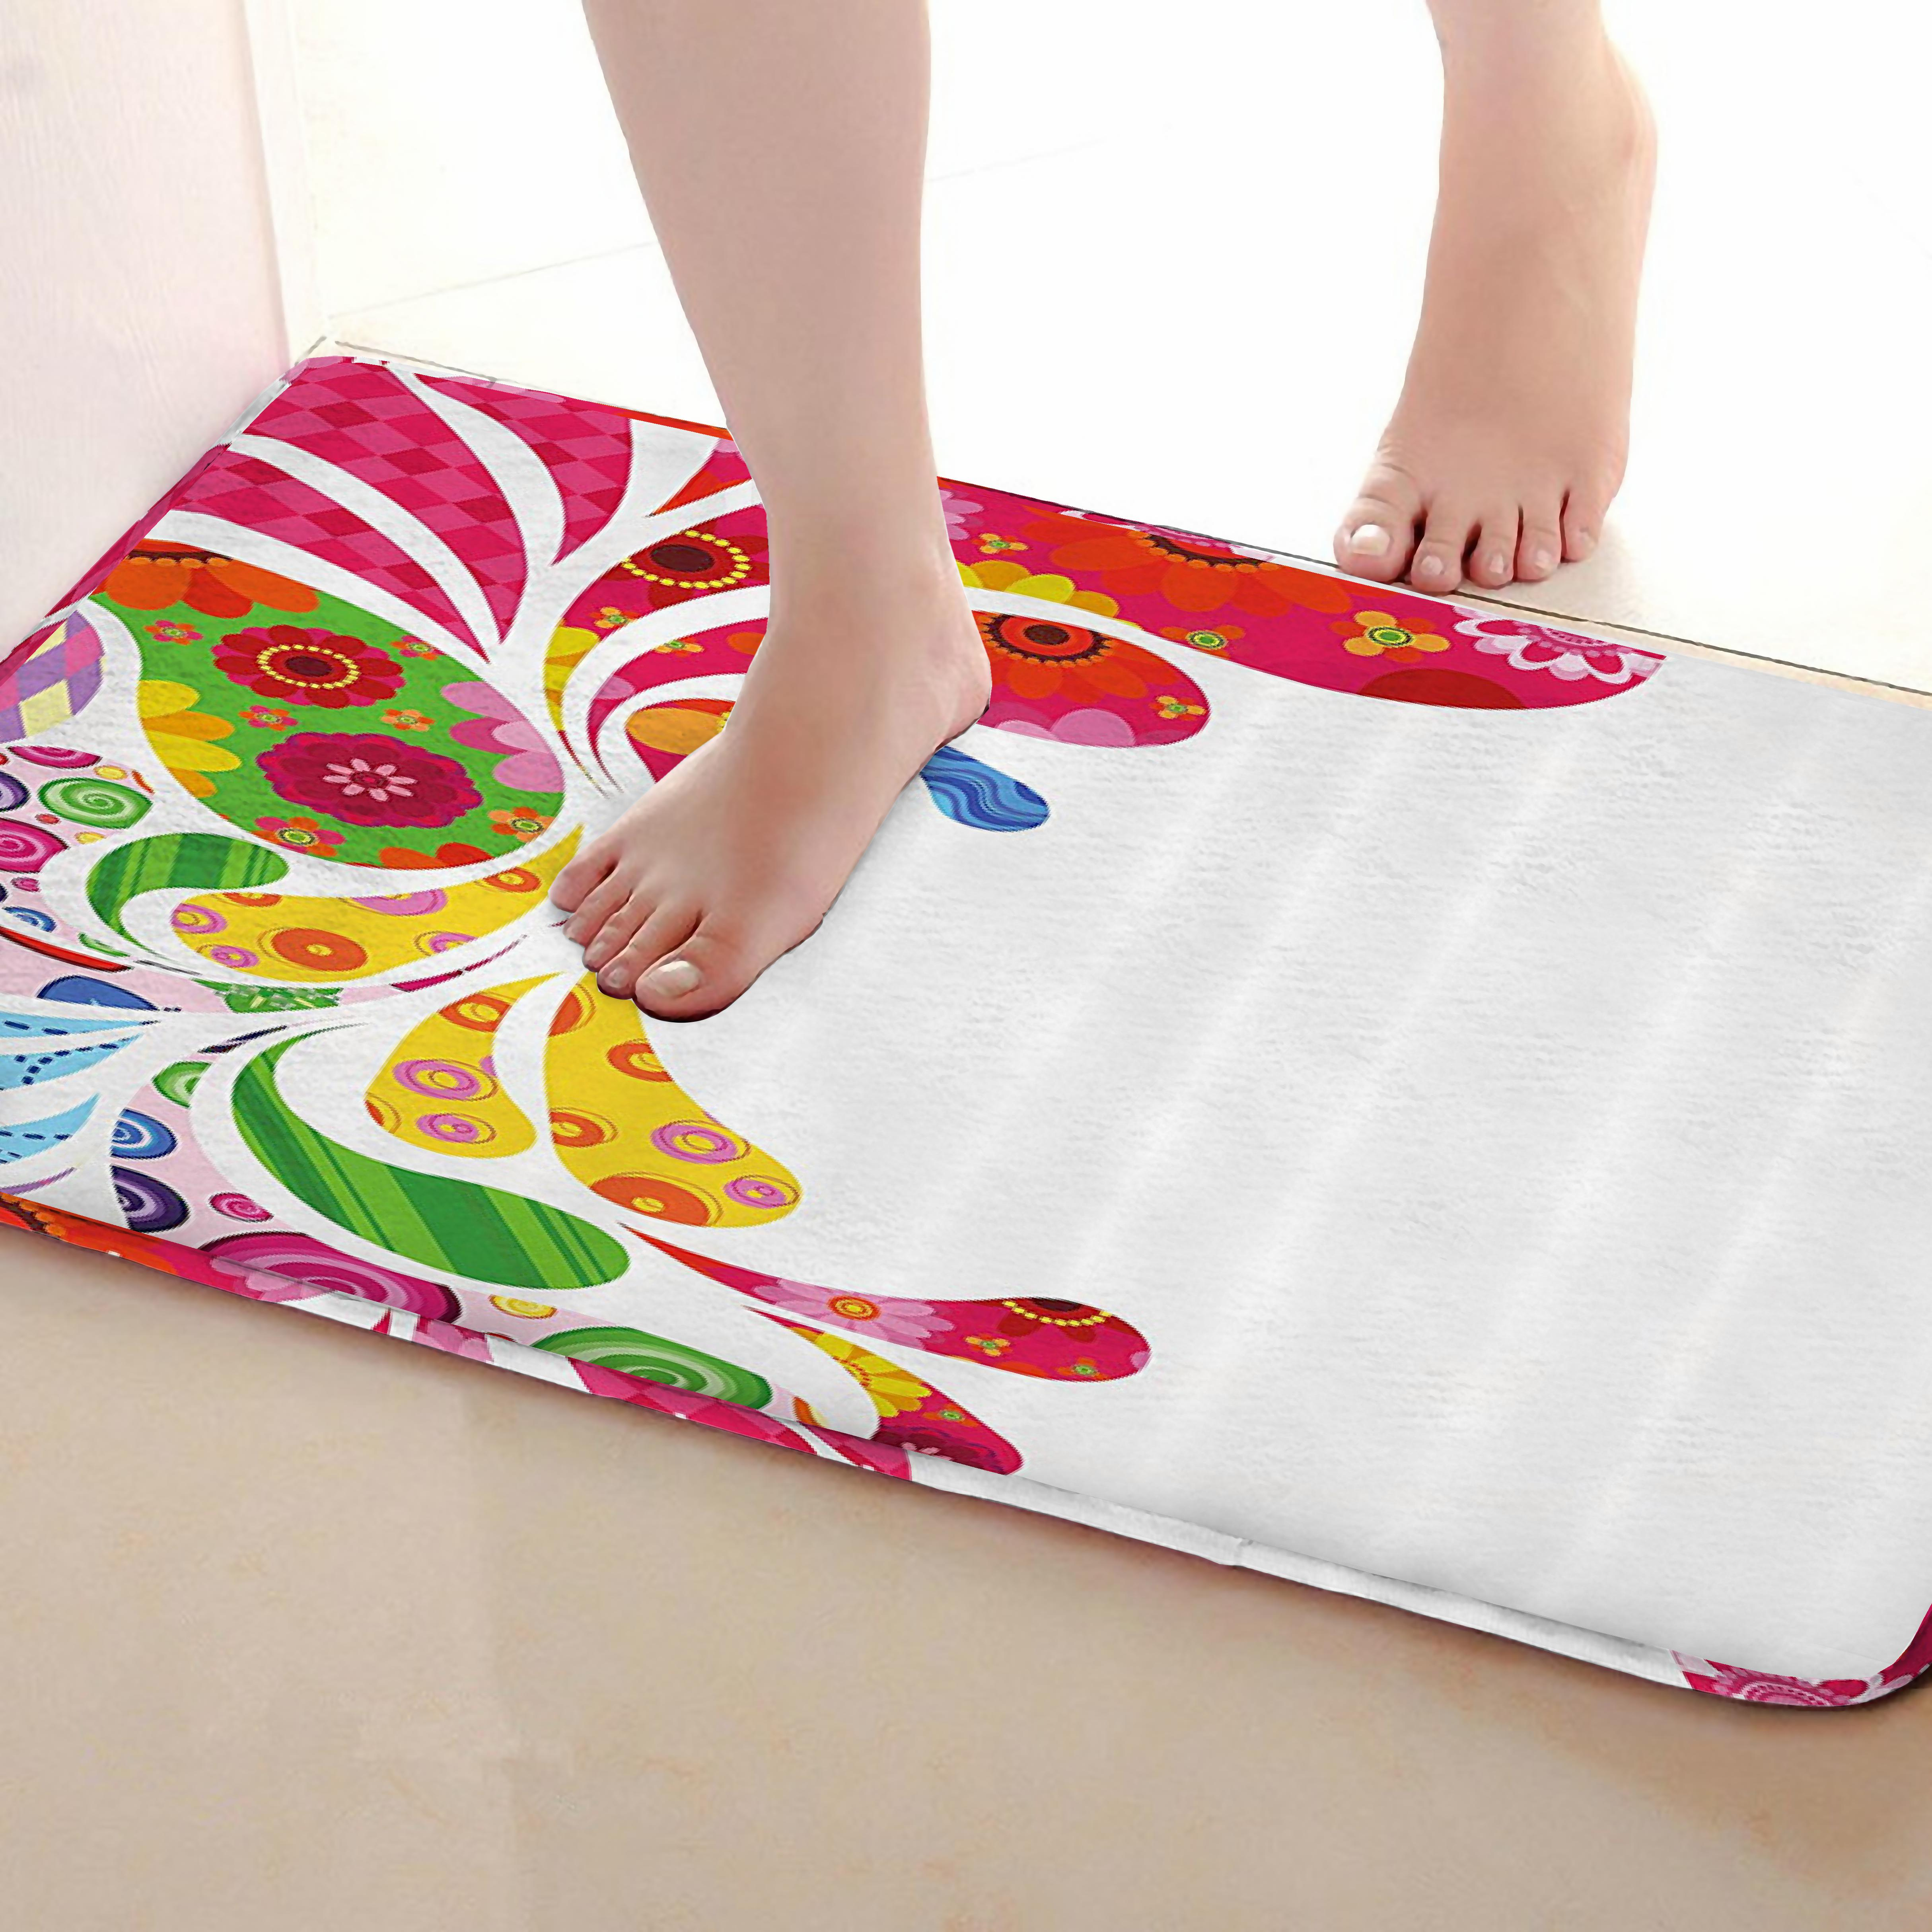 Colorful Style Bathroom Mat,Funny Anti Skid Bath Mat,Shower Curtains Accessories,Matching Your Shower Curtain